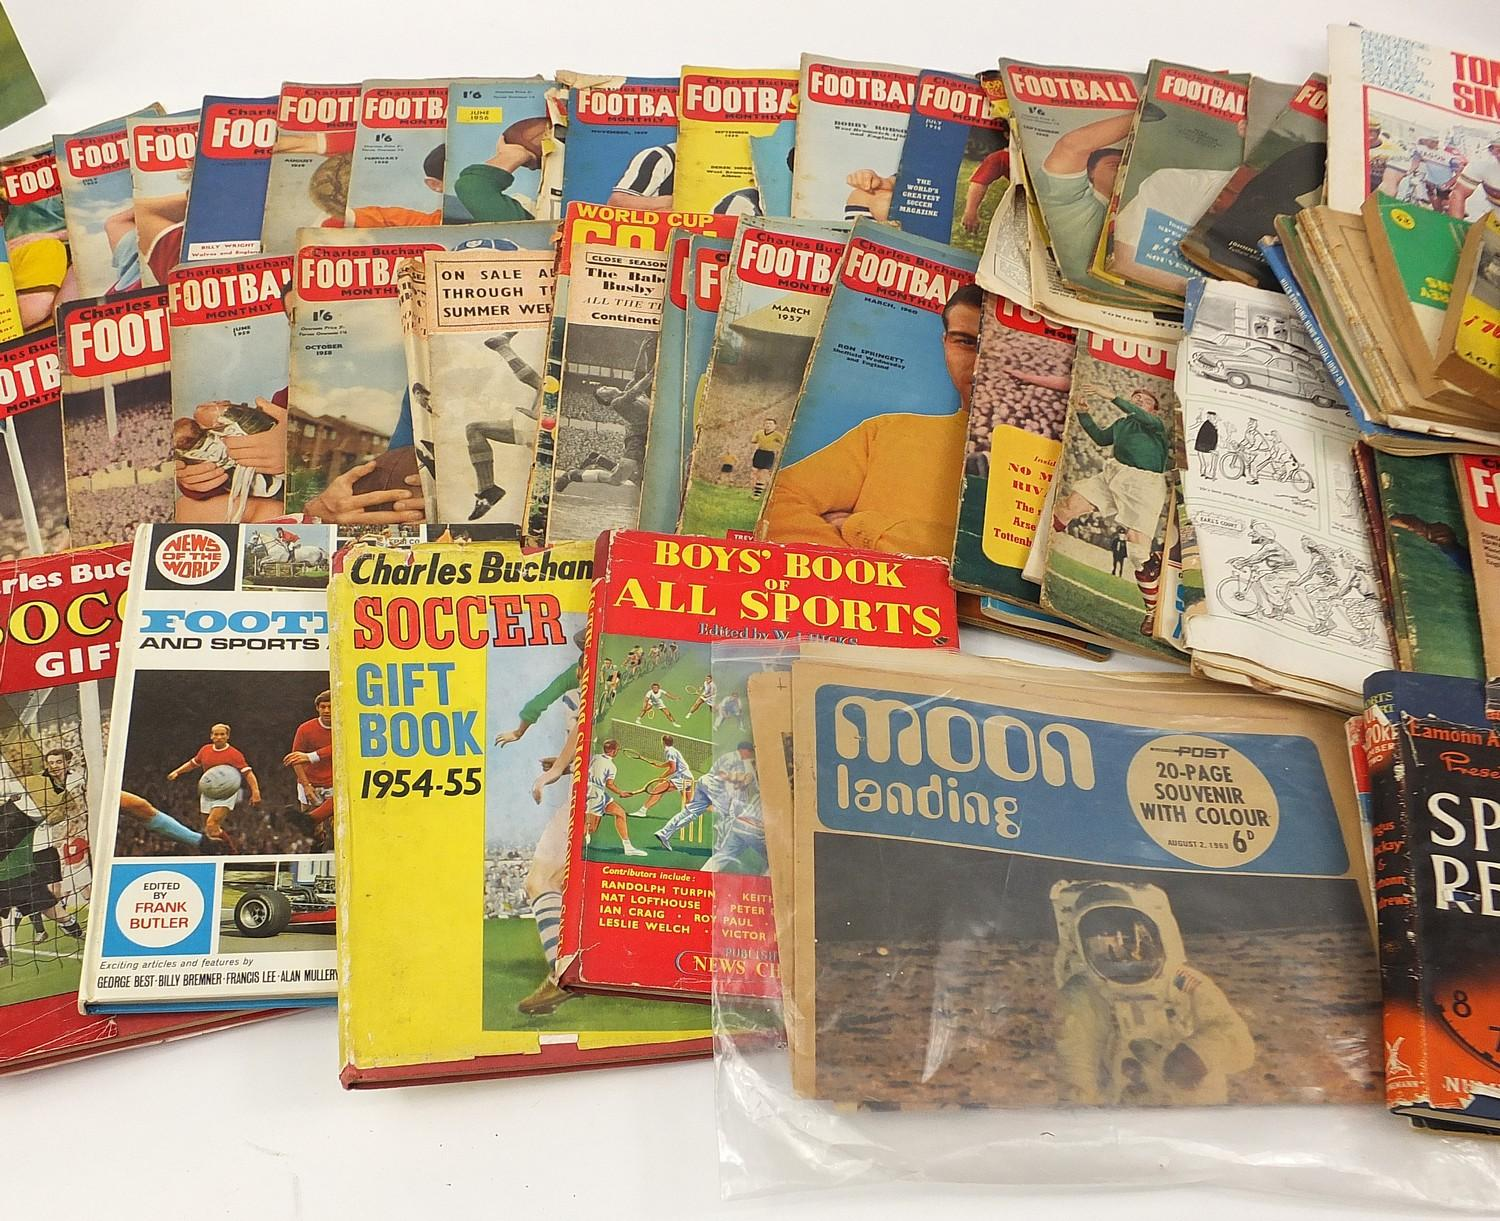 Collection of vintage and later football related books and magazines including The Real Madrid and - Image 6 of 7